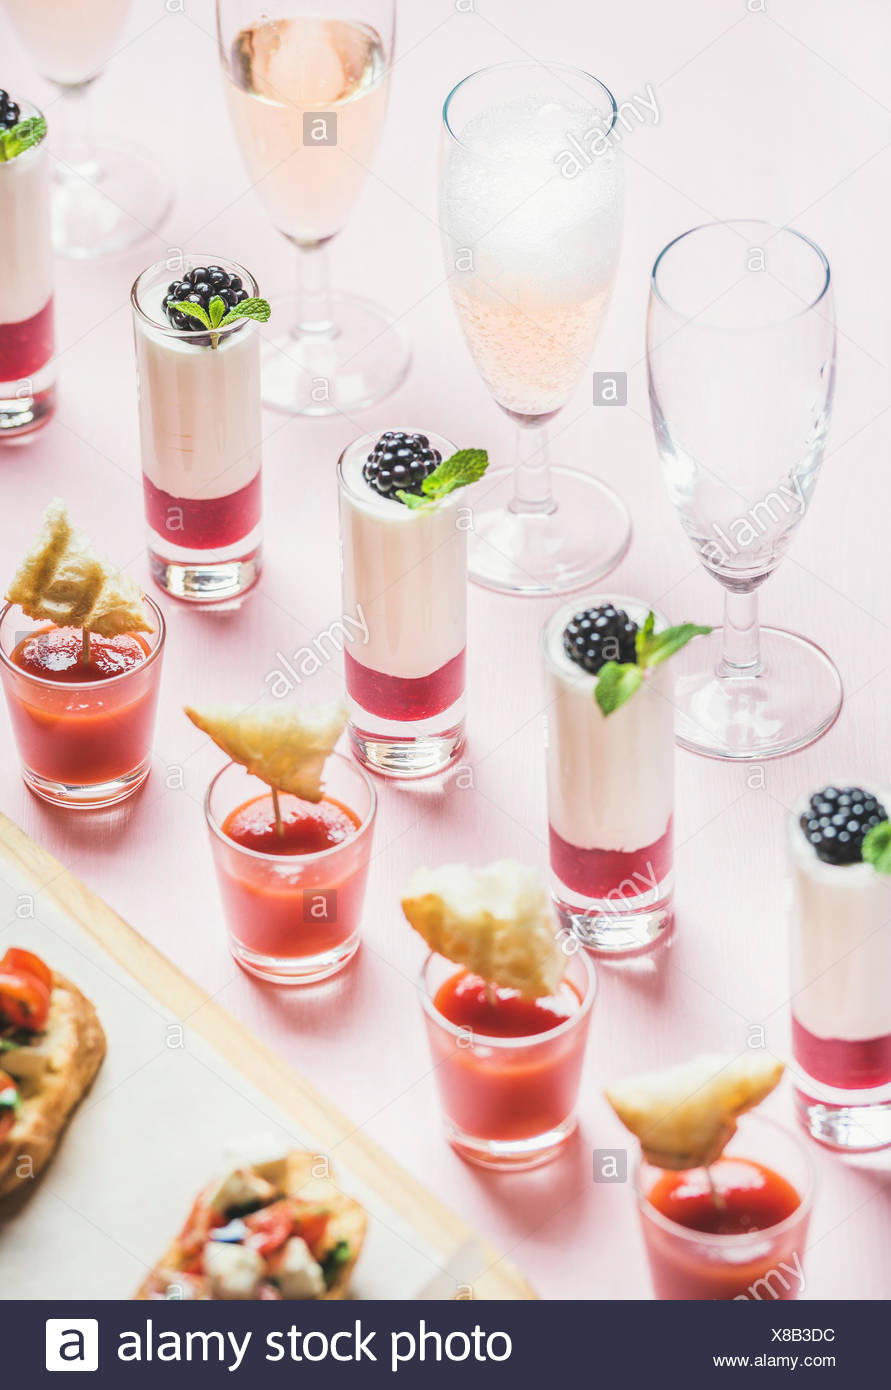 Close-up of various snacks, brushettas, gazpacho shots, desserts with berries and champagne on corporate event, christmas, birthday, wedding celebrati - Stock Image